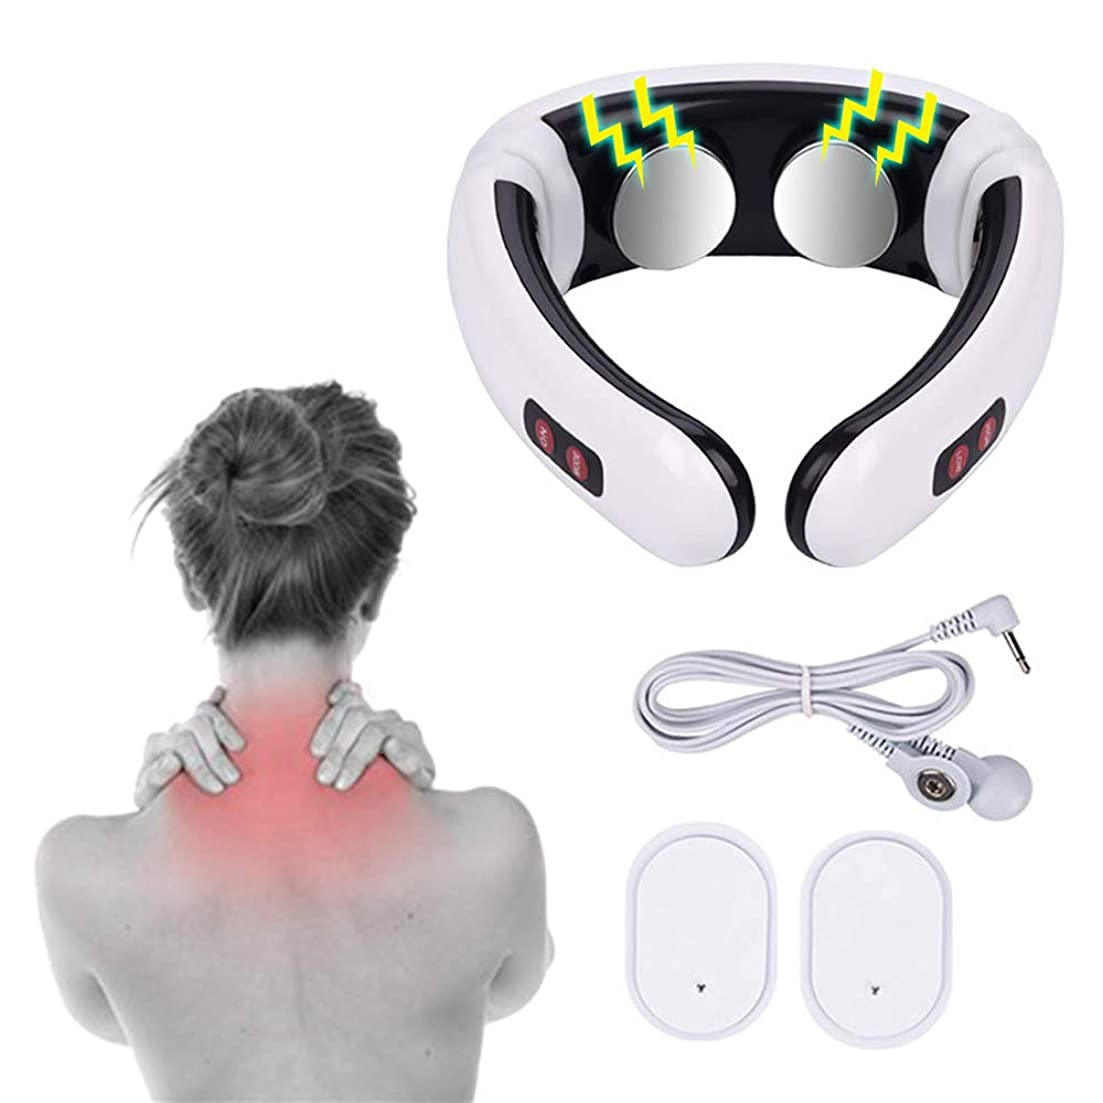 熱狂的な犯人ちっちゃい1 PC Electric Pulse Back and Neck Massager Far Infrared Pain Relief Tool Health Care Relaxation Multifunctional Physiotherap Free shipping 電気パルスバック&ネックマッサージャー